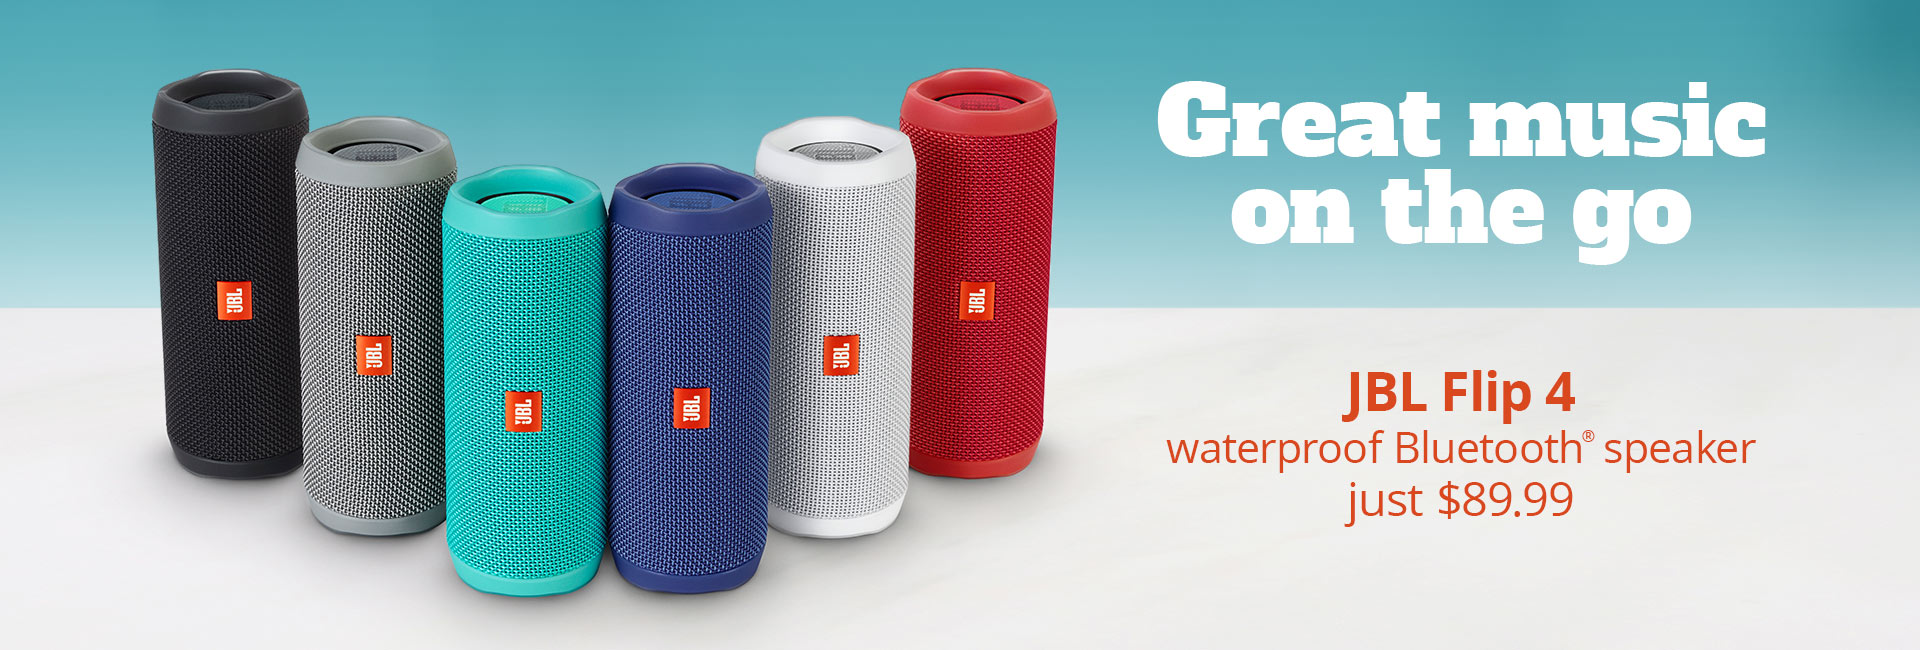 JBL Flip 4 waterproof Bluetooth speaker just $89.99